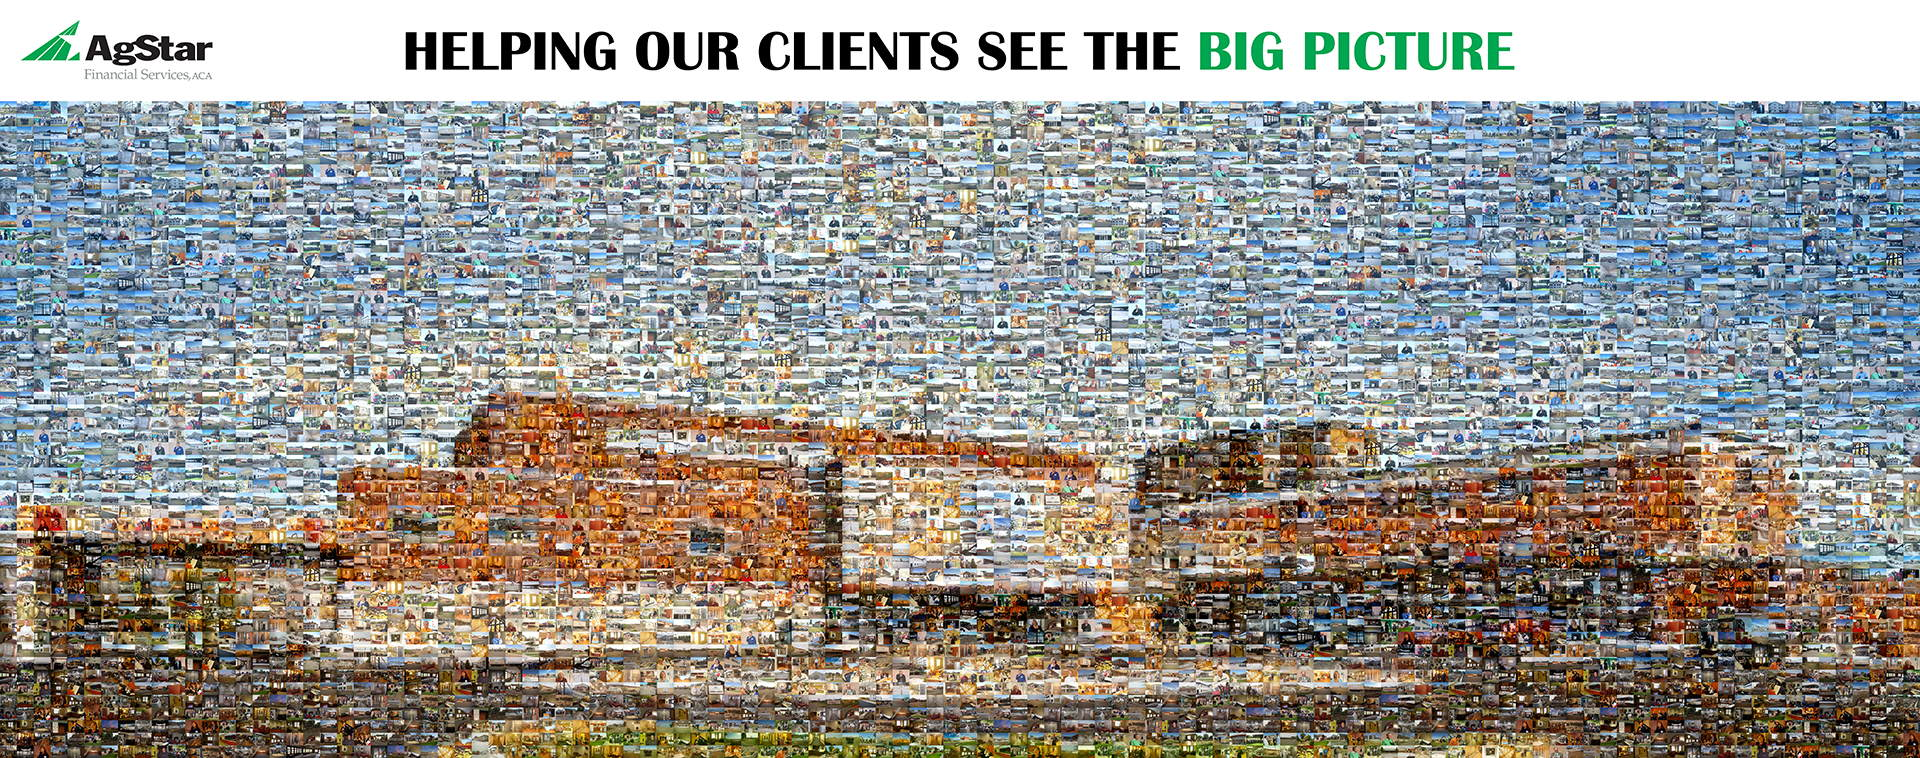 photo mosaic this Agstar Financial Services mural was designed using over 400 company photos